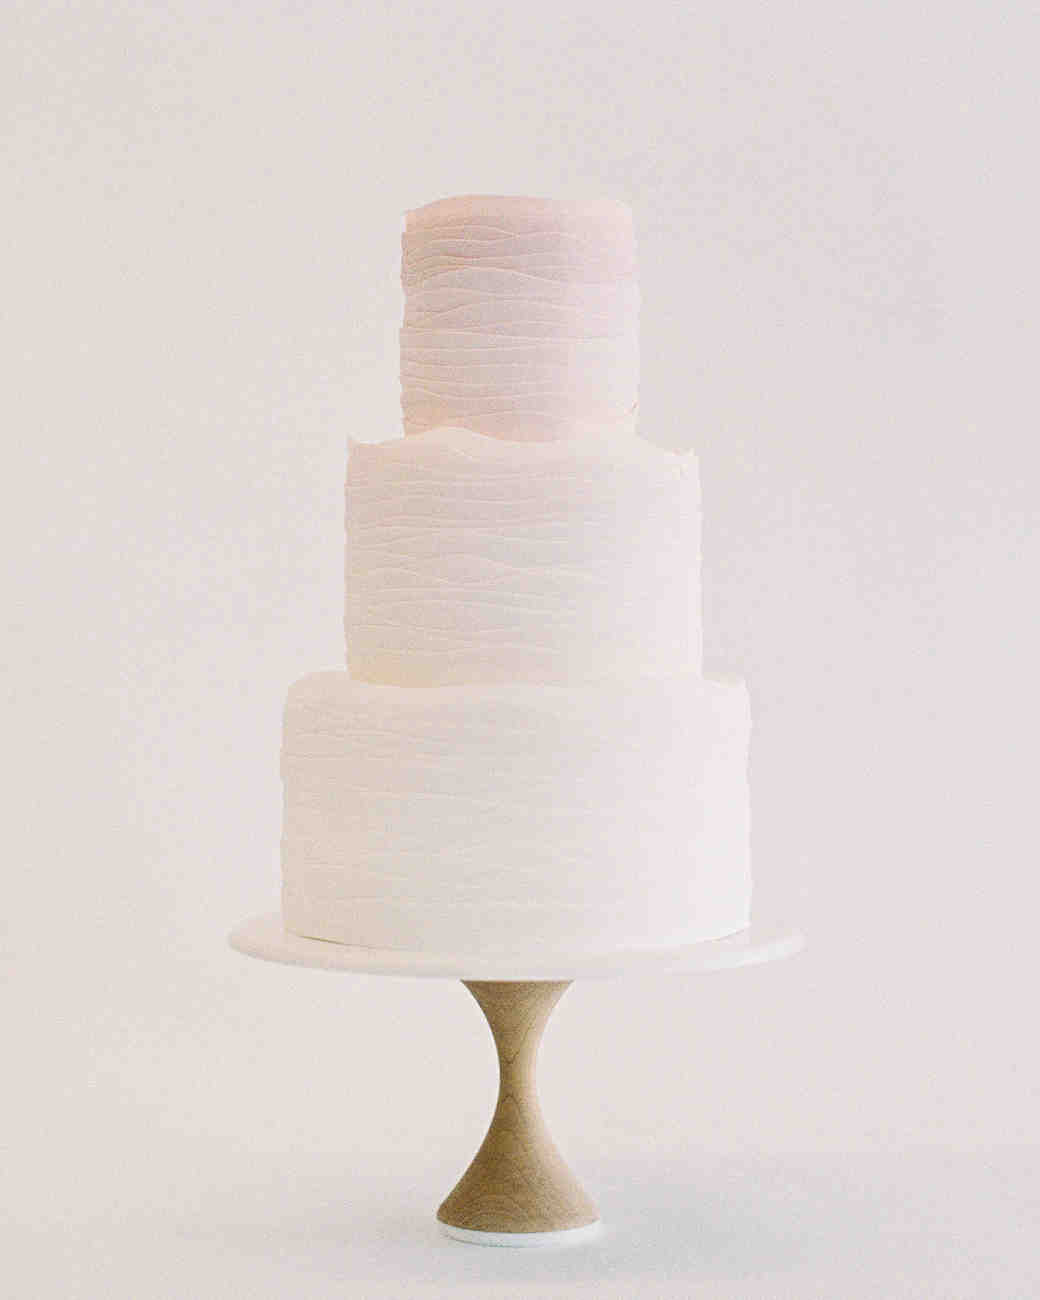 Deckle-Edged Ombre Pink and White Cake